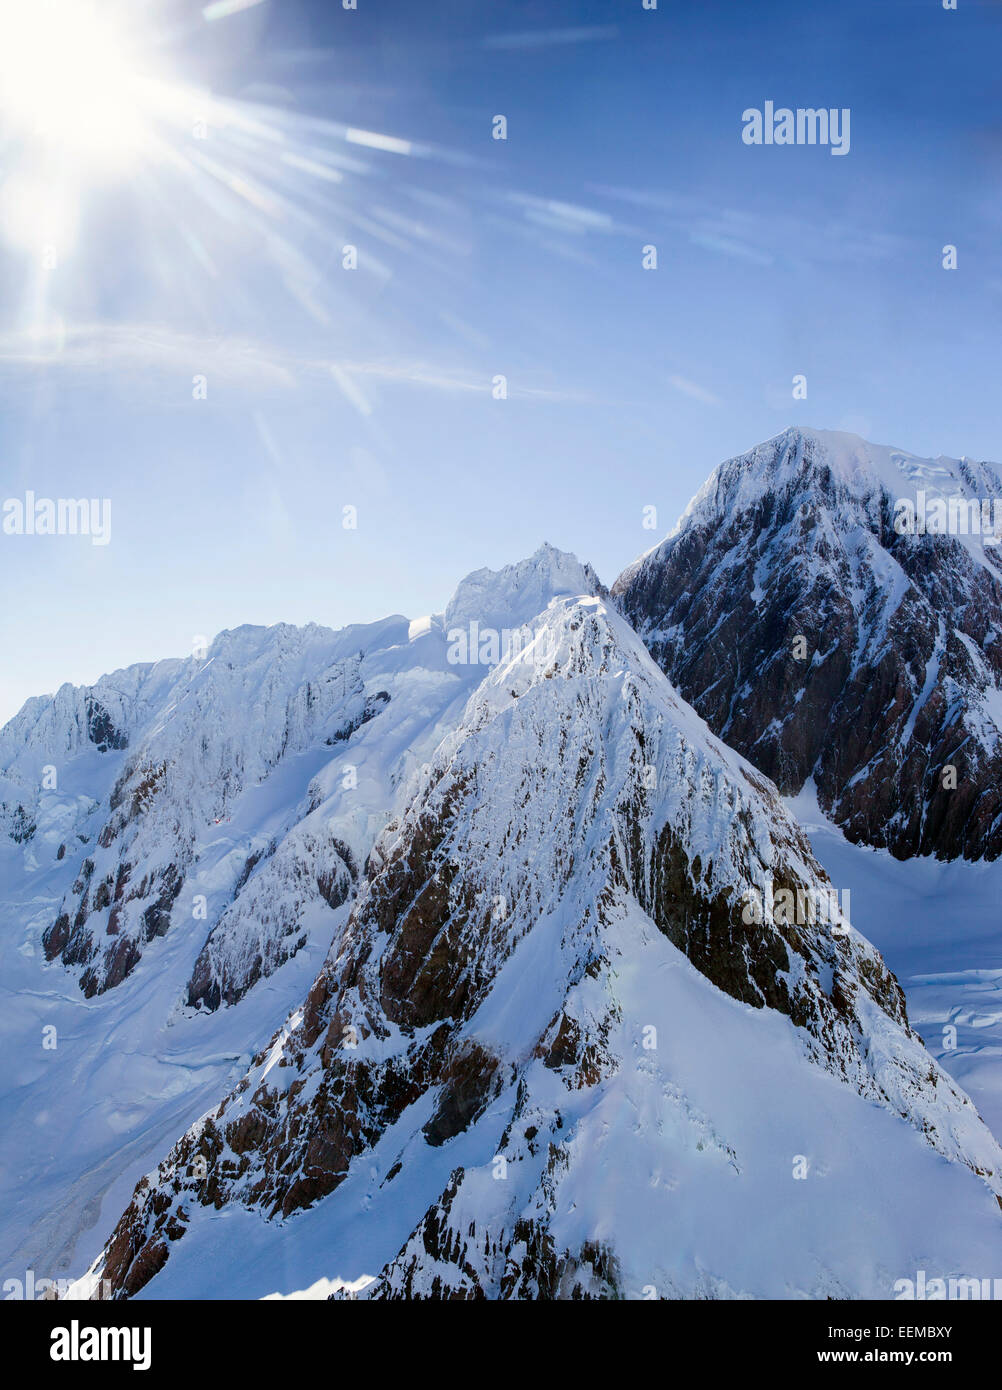 Snow covered mountain tops - Stock Image